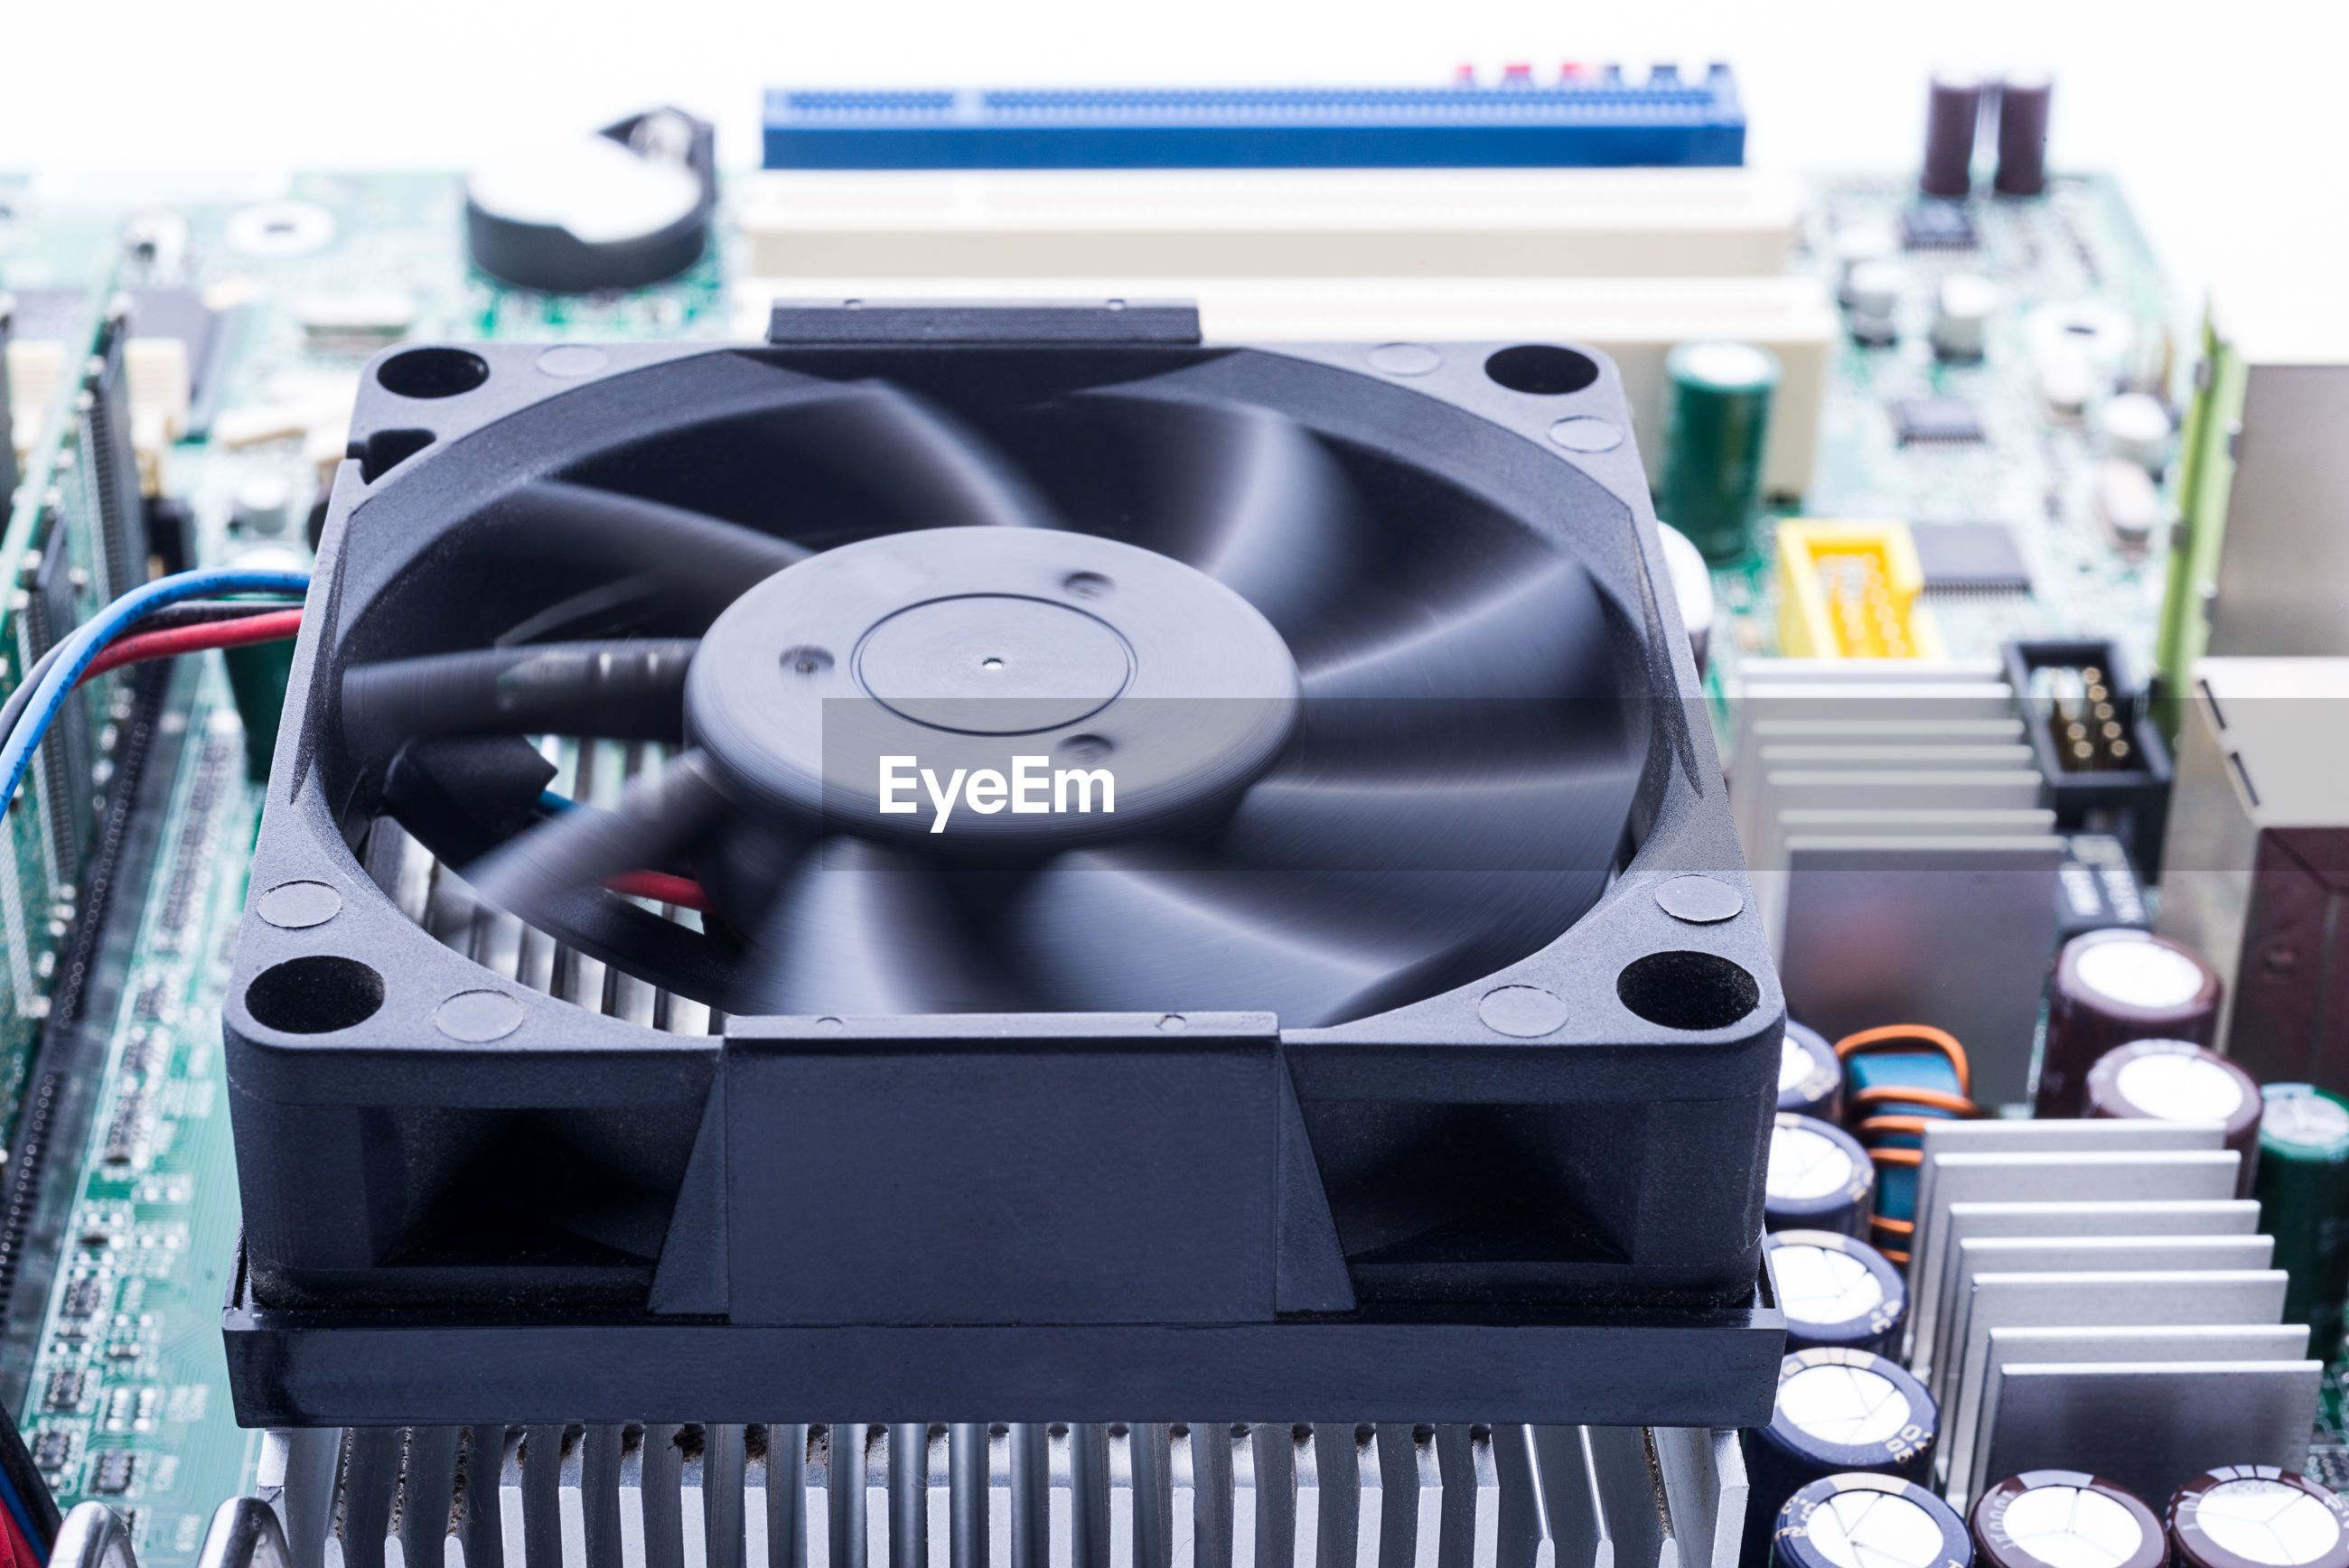 Close up of mother board